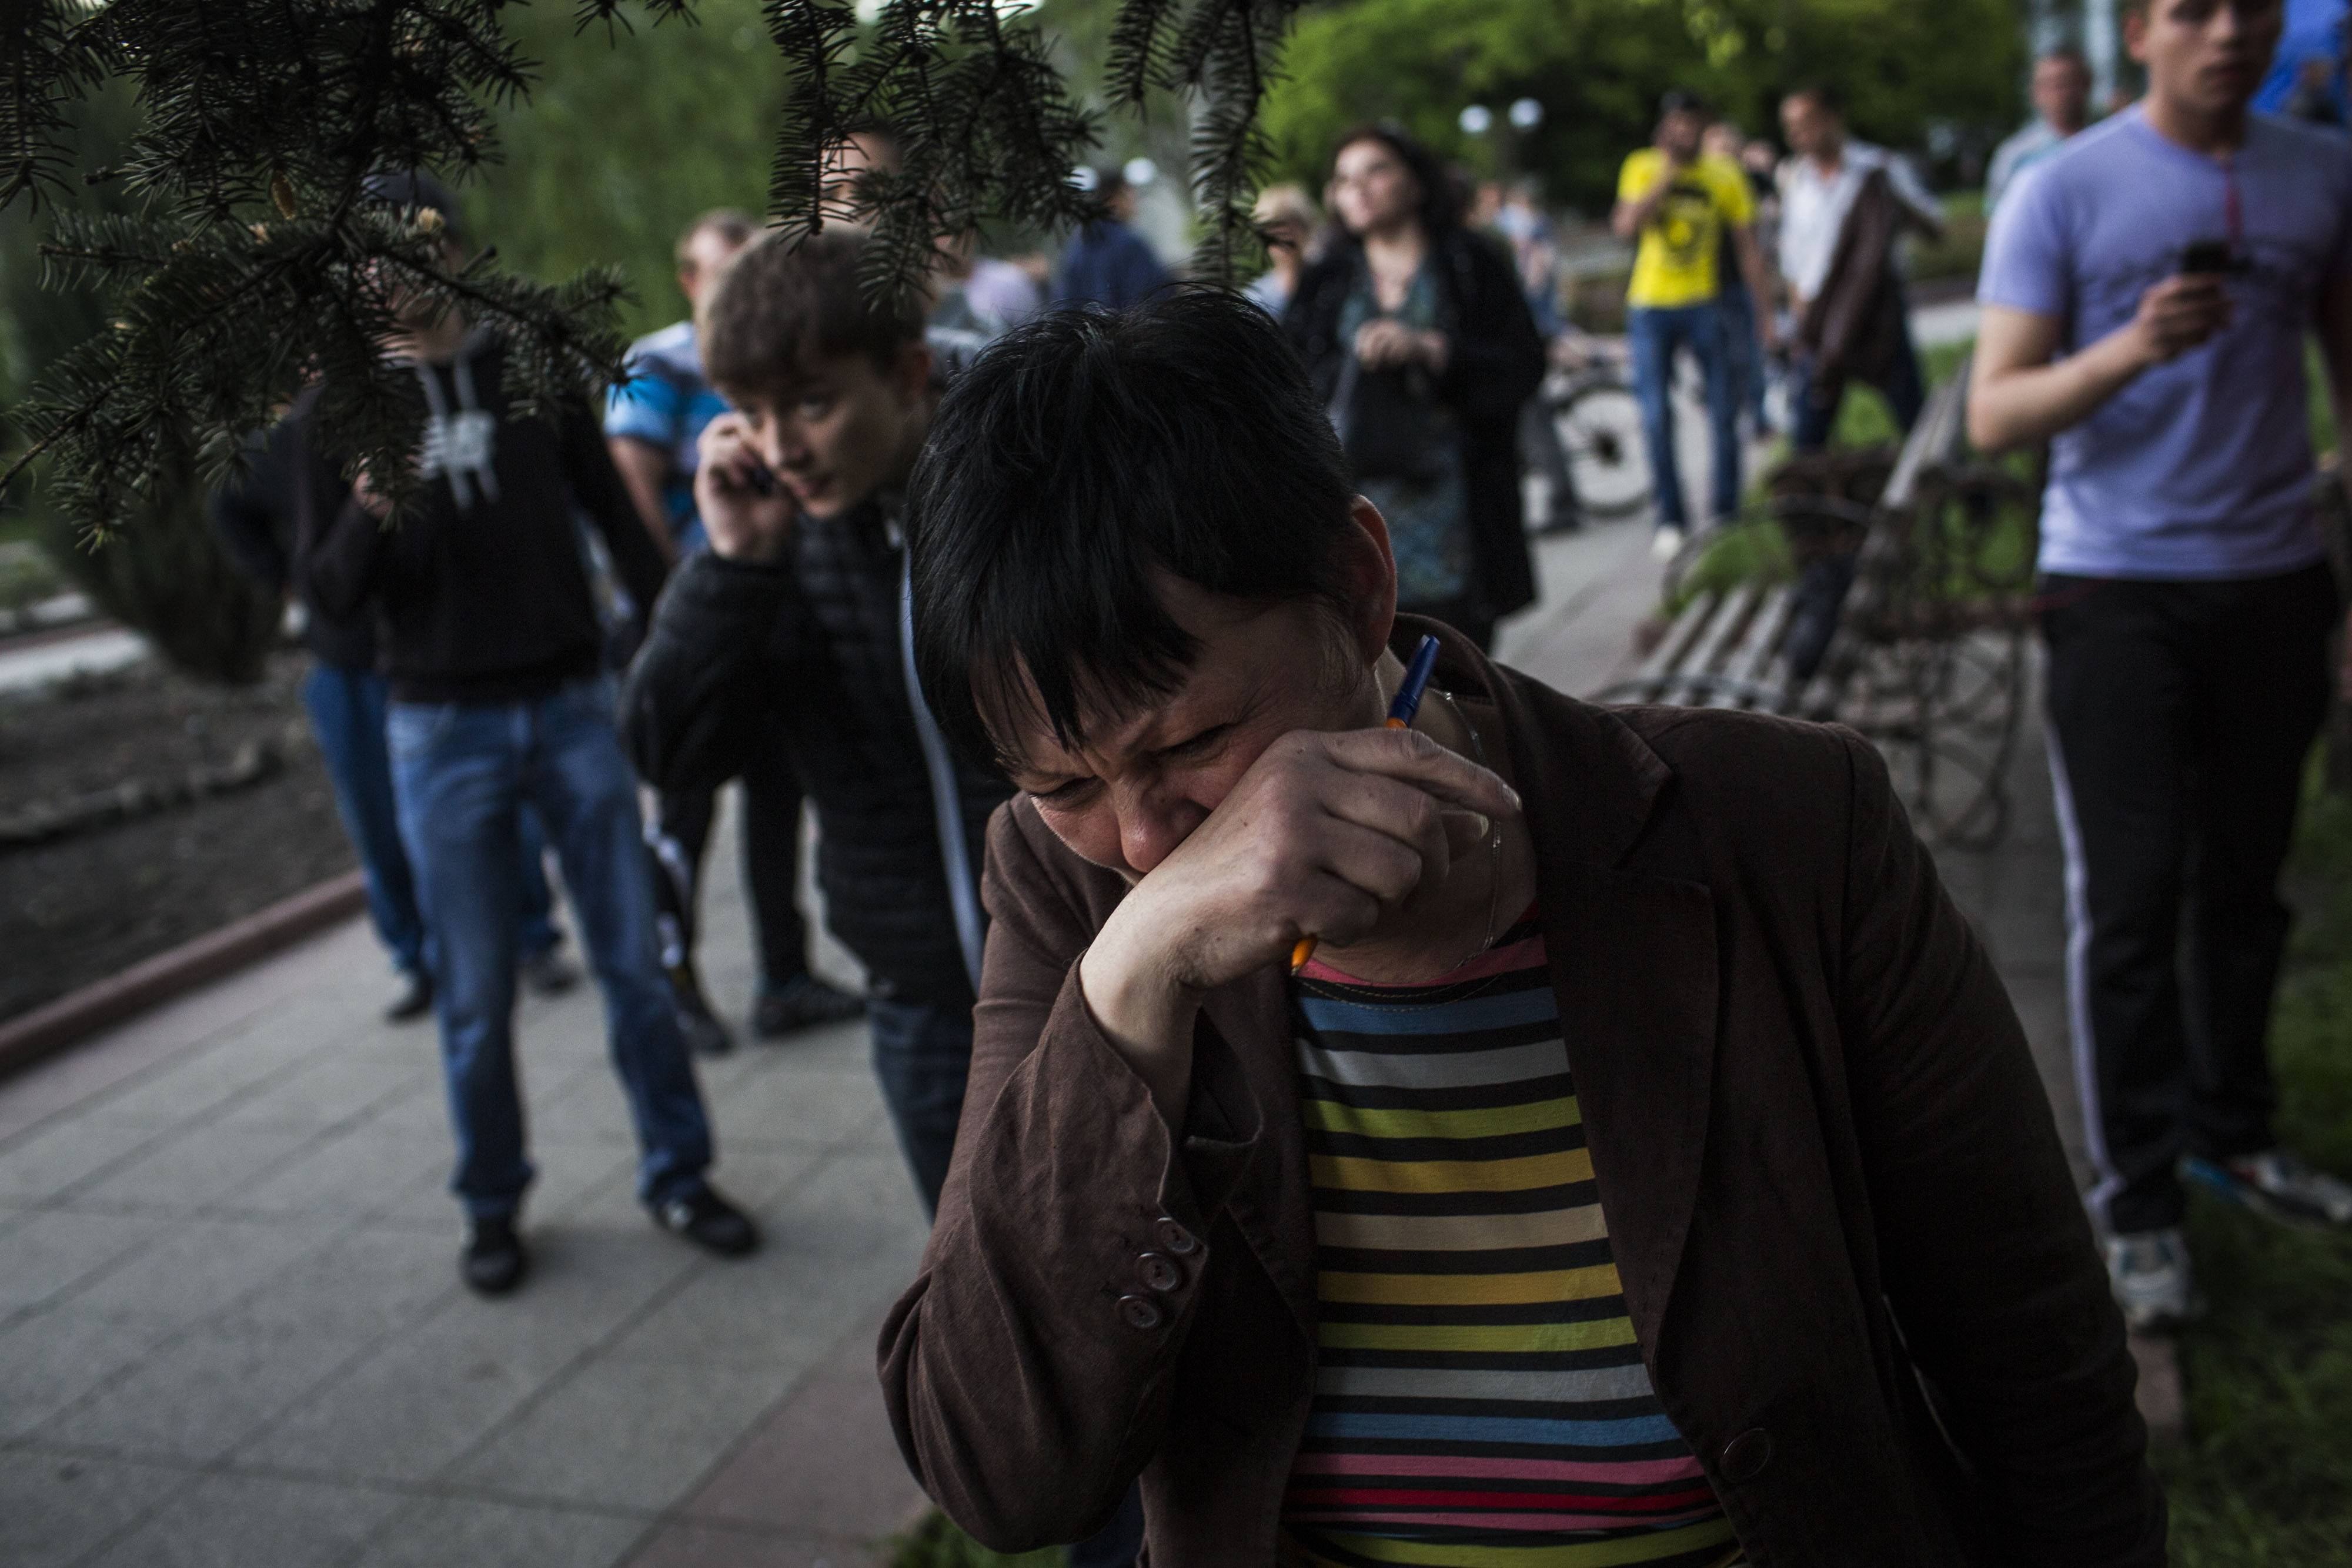 A woman reacts after Ukrainian national guardsmen opened fire on a crowd outside a town hall in Krasnoarmeisk, about 20 miles from the regional capital, Donetsk, Ukraine, Sunday.